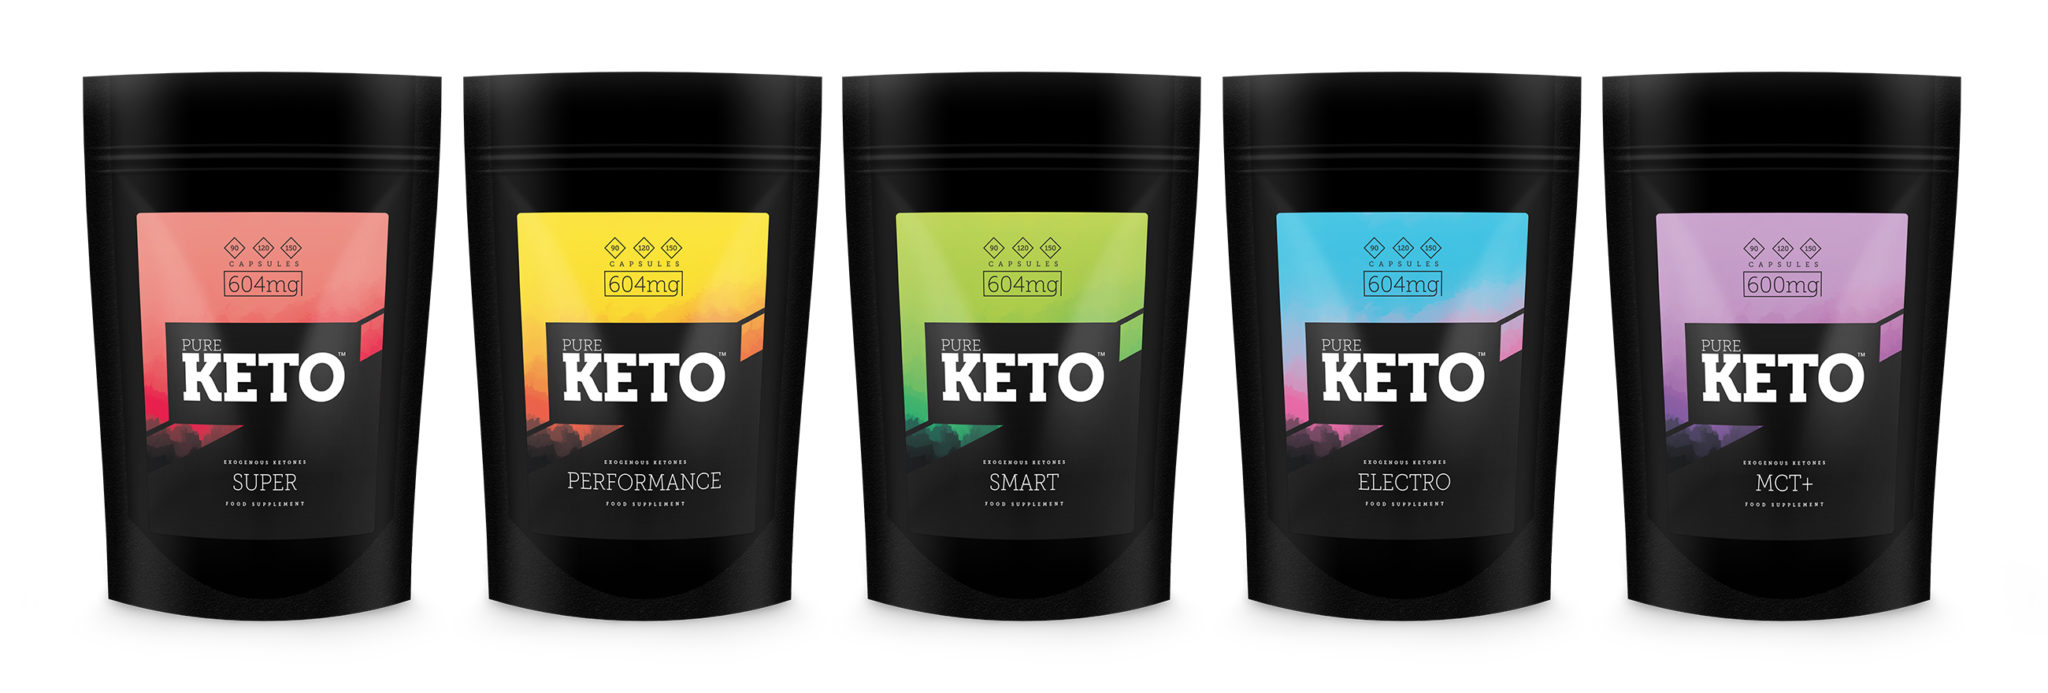 All pure keto products in banner